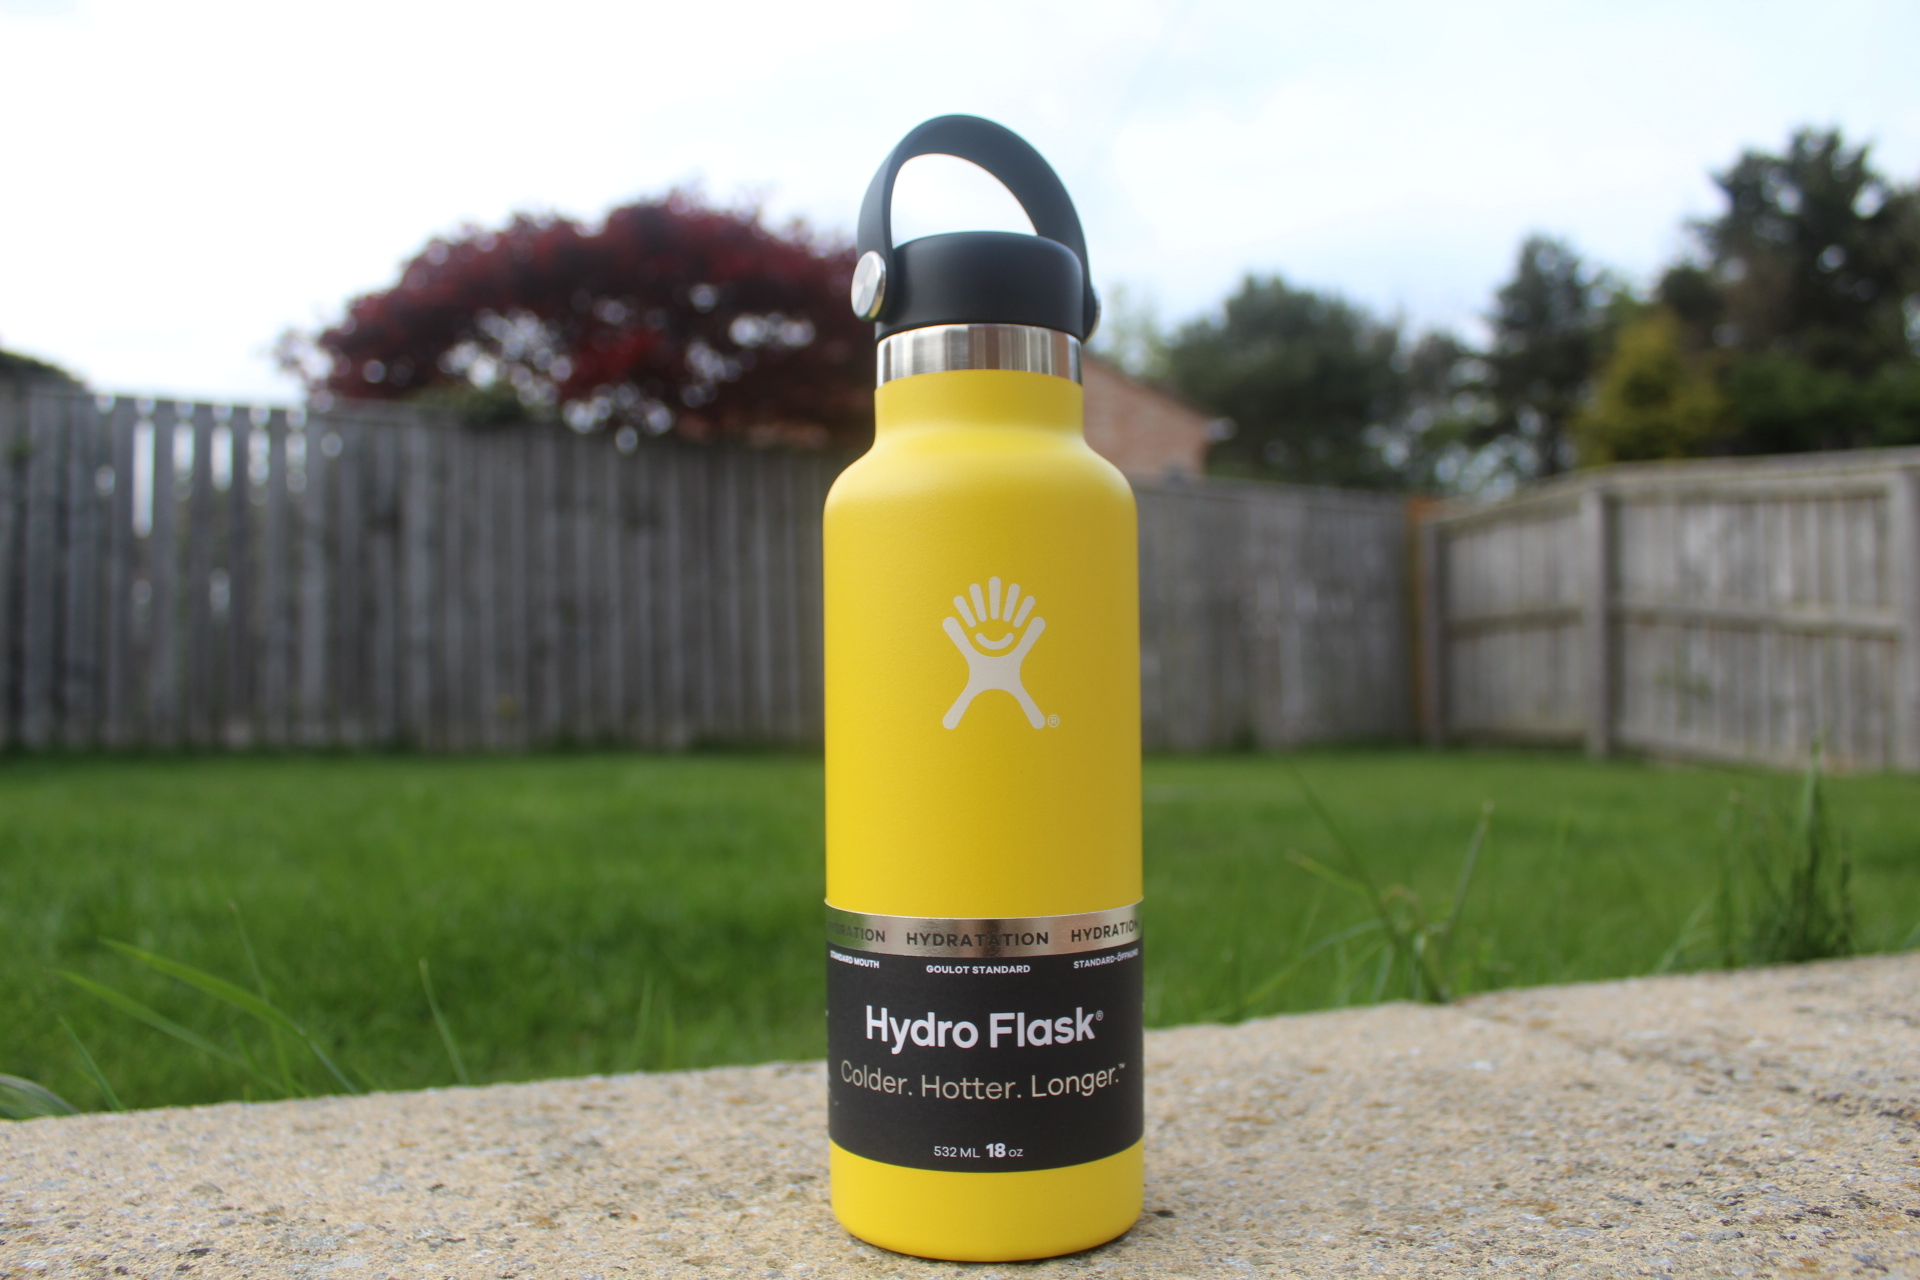 SeaPigs Bottles - the ultimate drinks companion - Hydro Flask - water bottle review